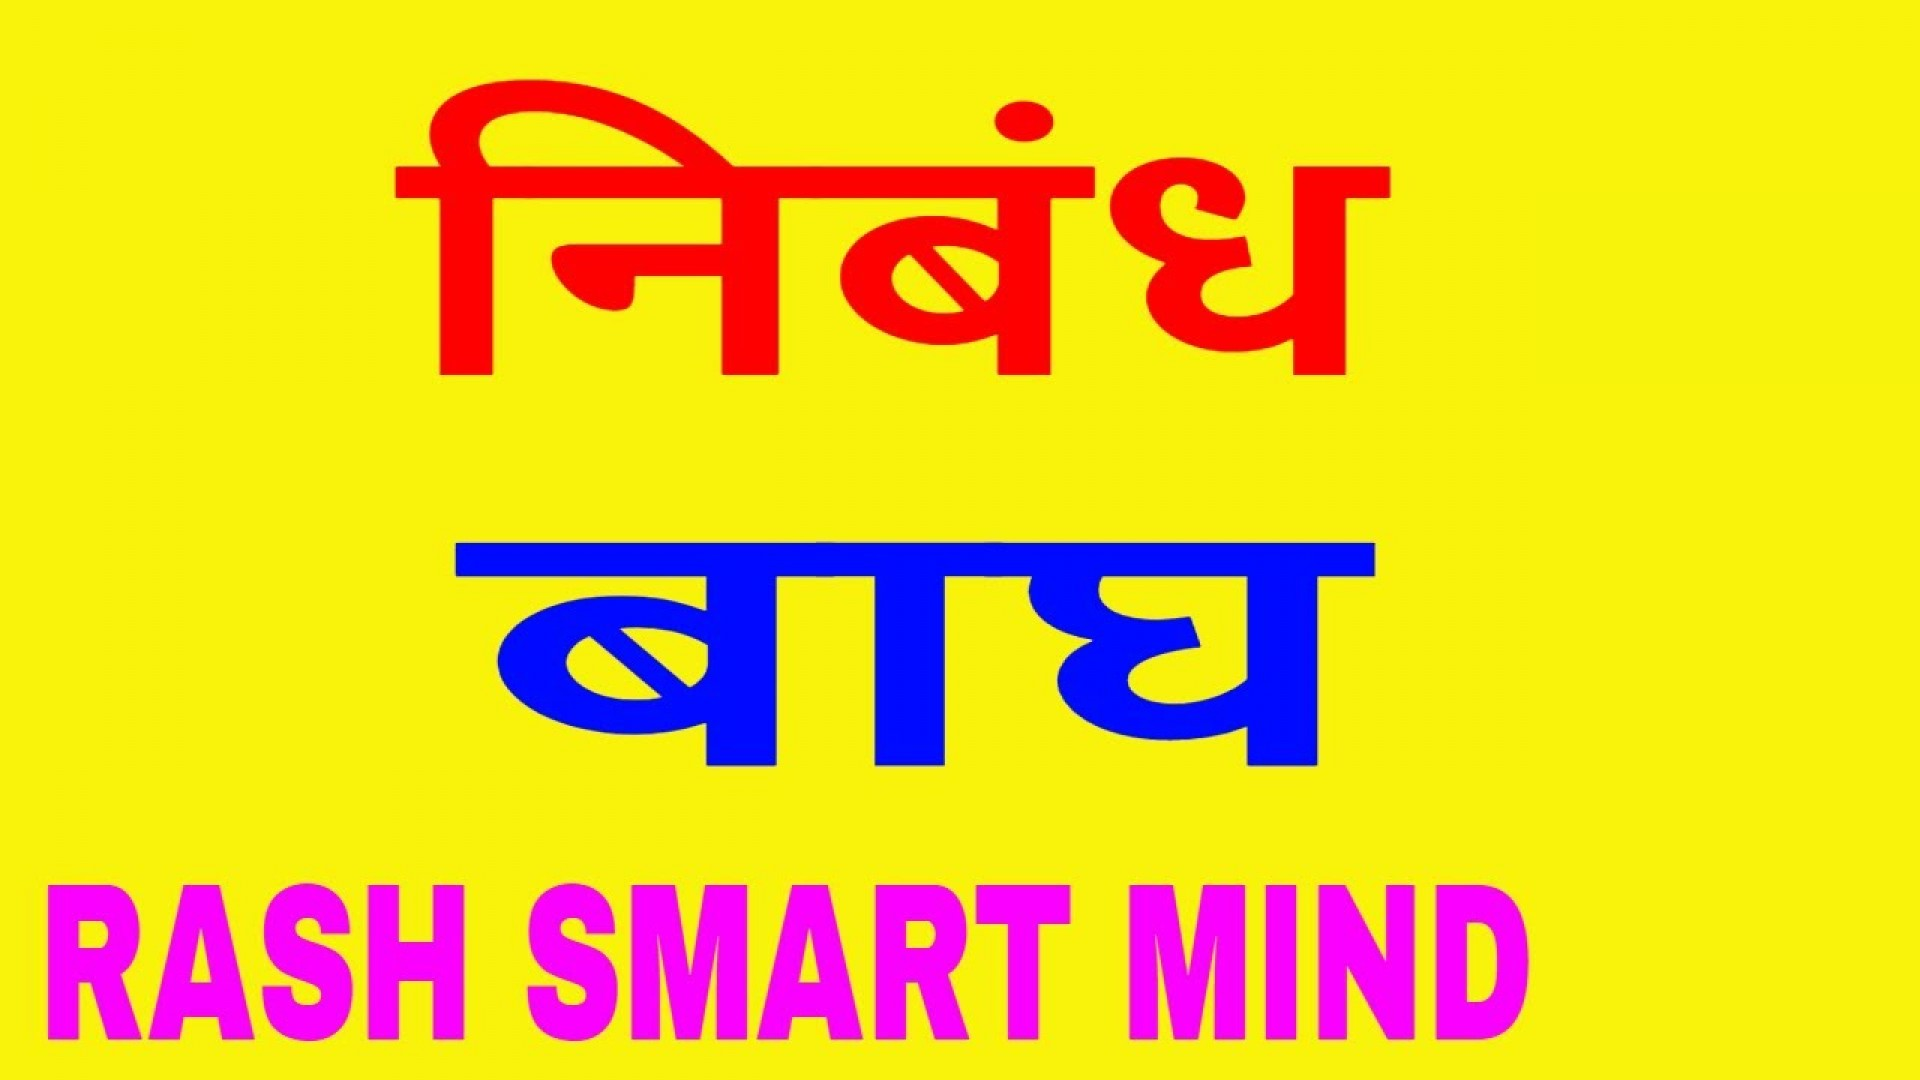 009 Essay On Tiger Maxresdefault Astounding Shroff Hindi For Class 1 National Animal In 1920